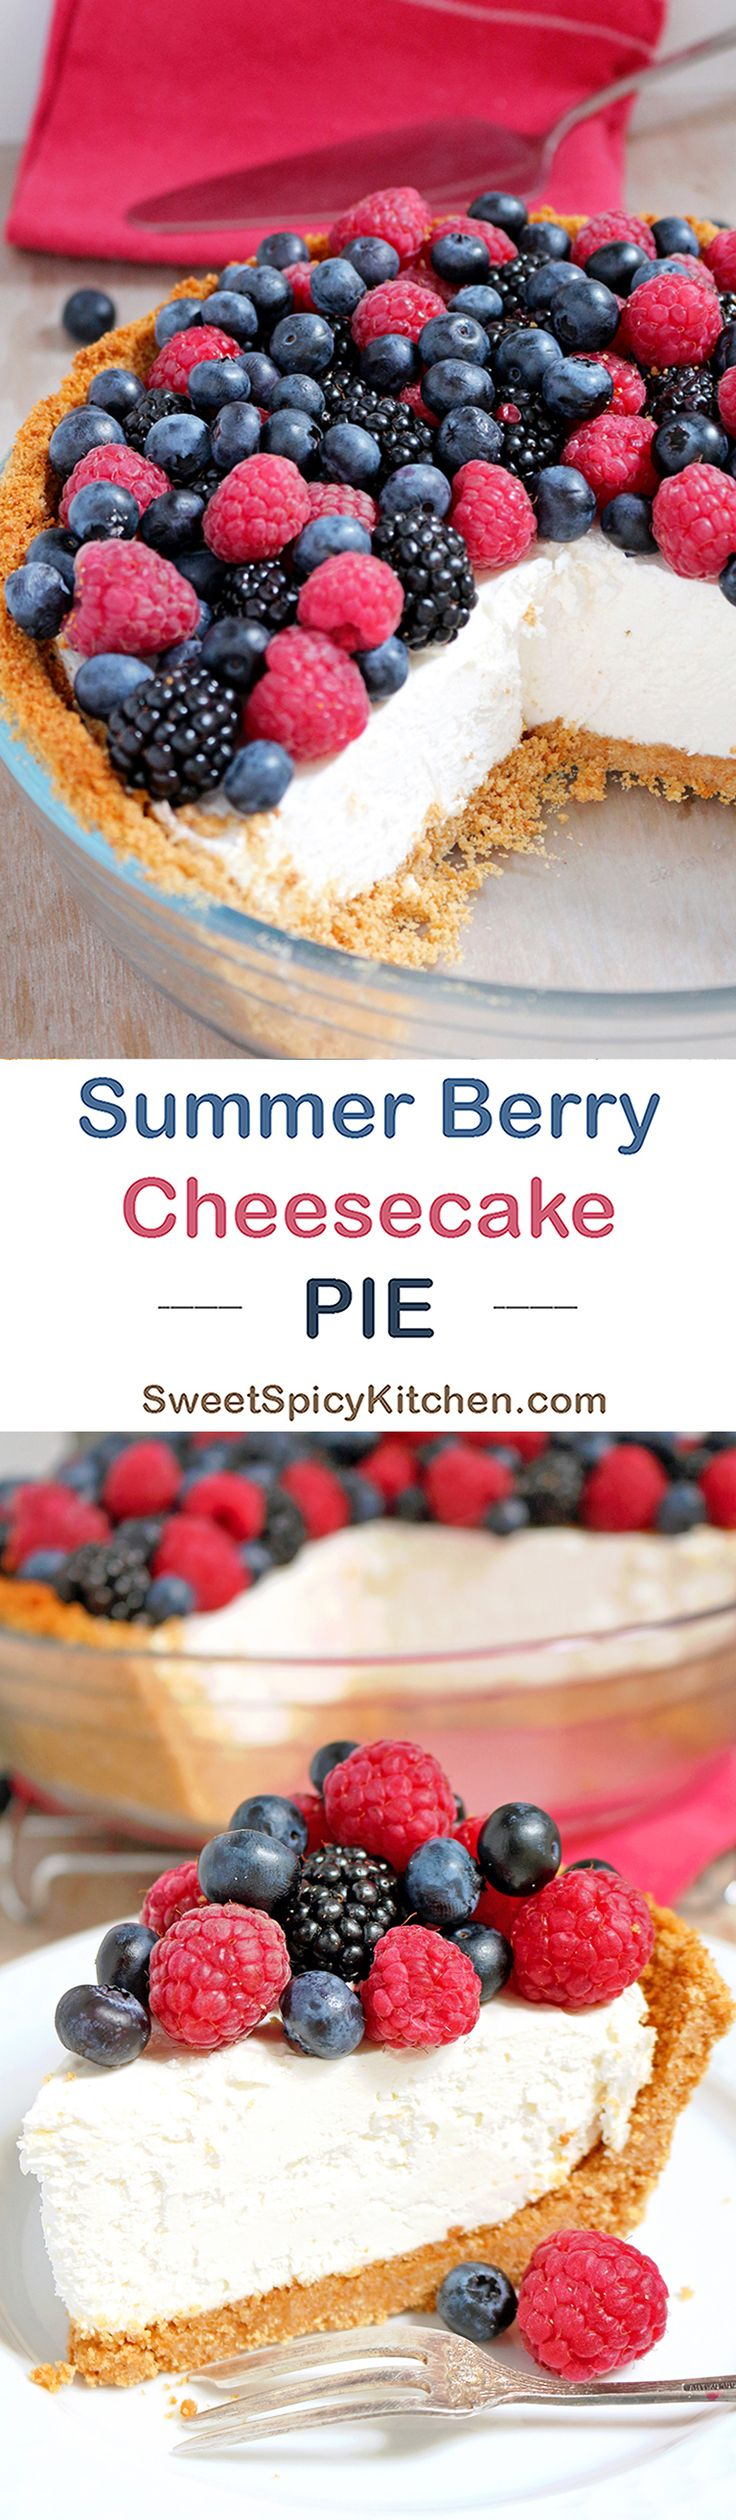 Summer Berry Cheesecake Pie a summer pie with cream cheese and fresh berries. Summer is here. Light meals and desserts and loots of fresh fruit are on menus